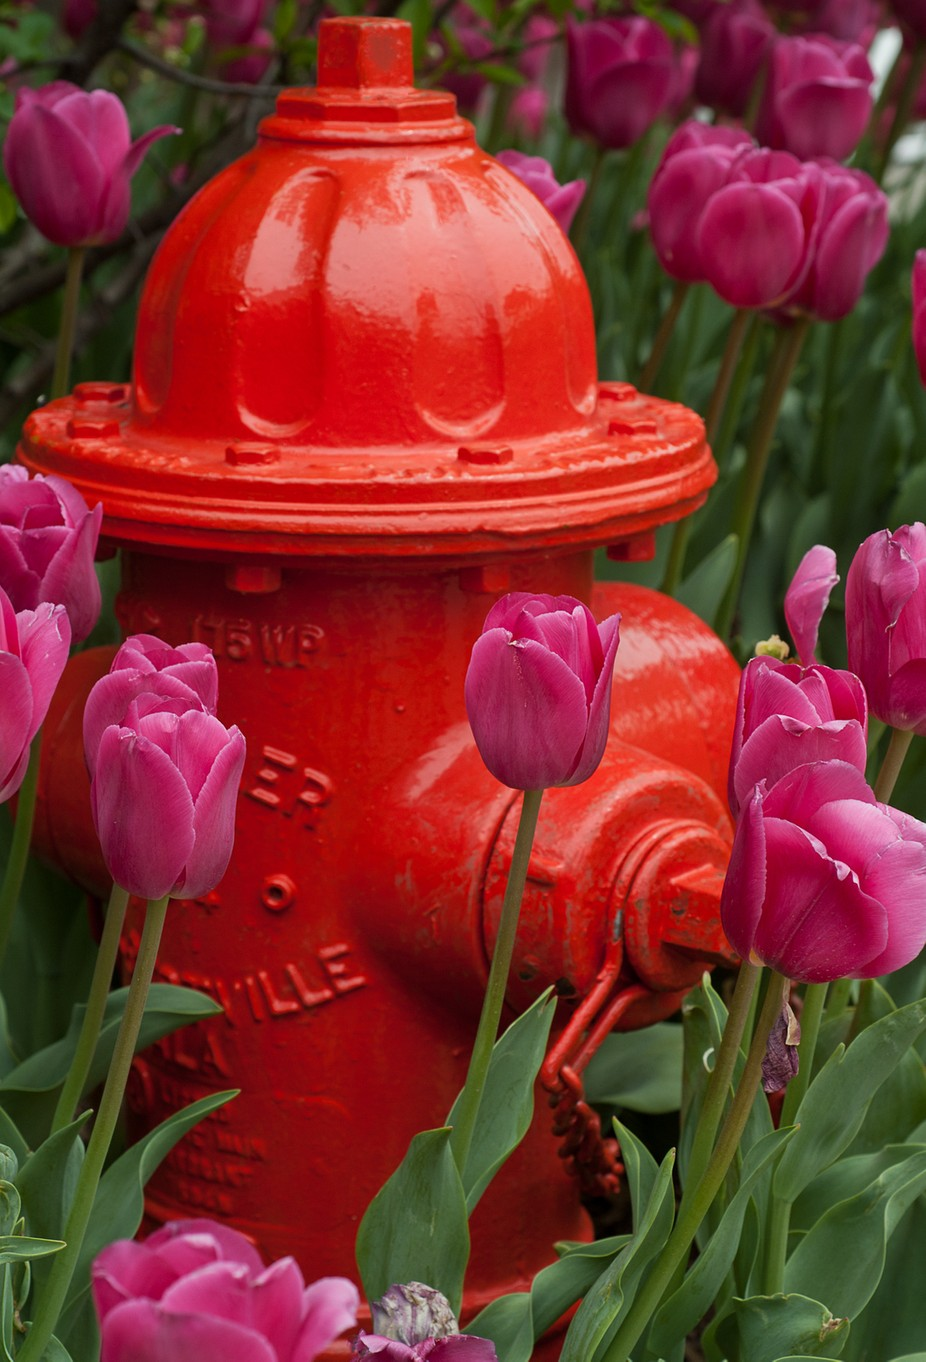 Tulips that seem to be hoping for a drink of water from their big red neighbor.